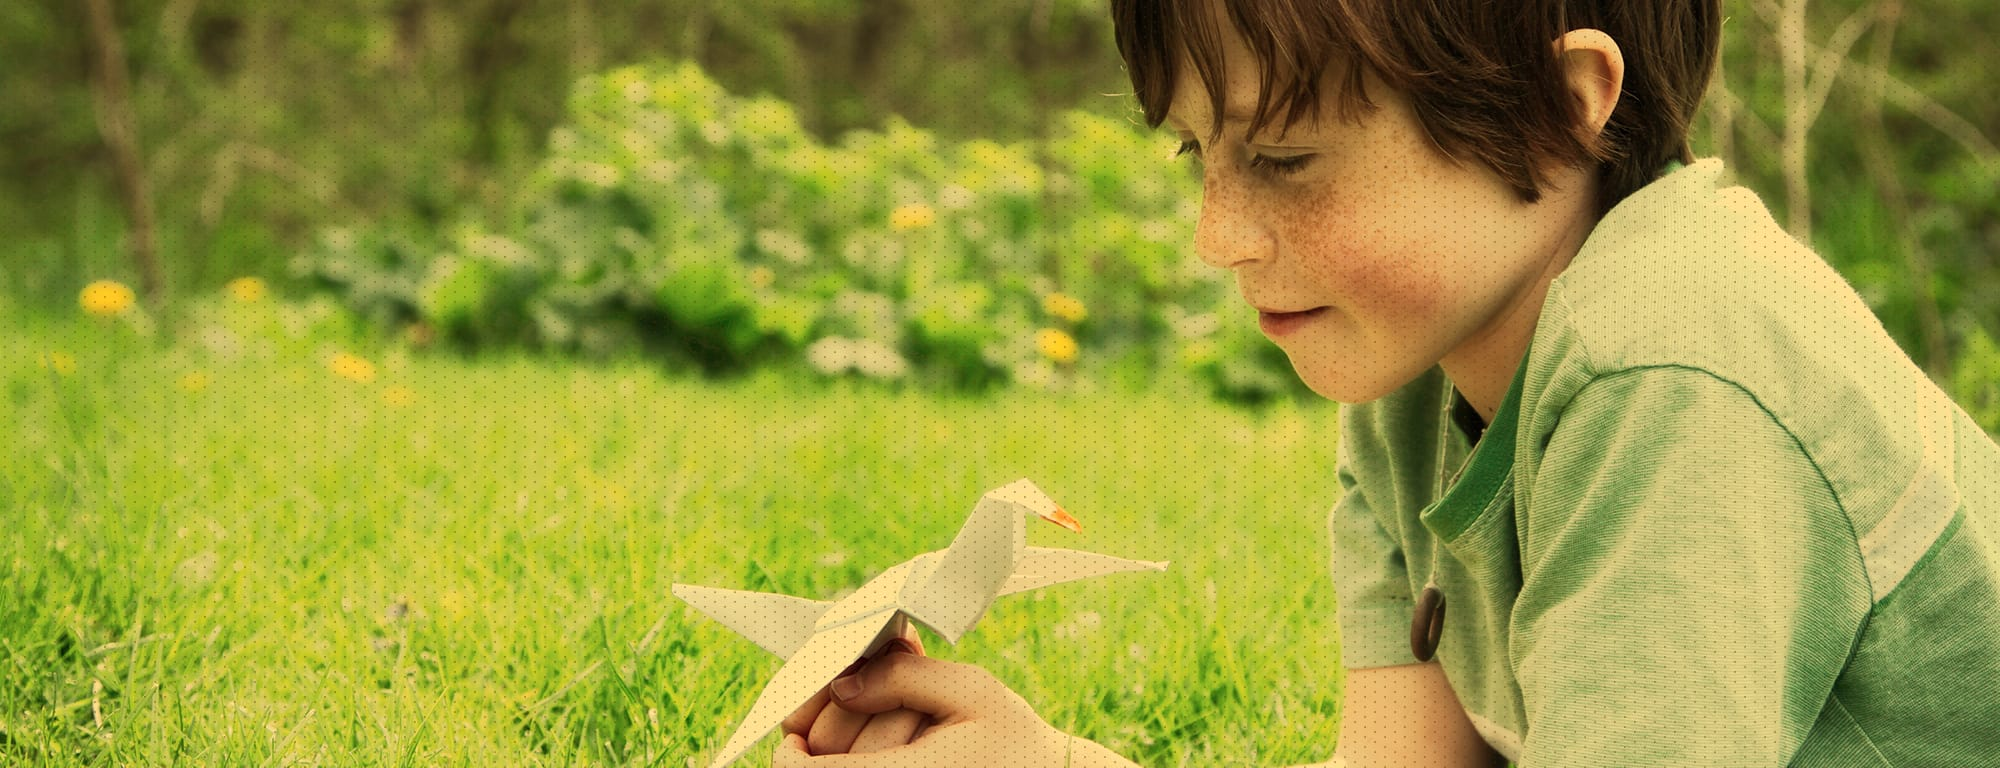 Little boy laying in grass, smiling and holding an origami bird made of paper